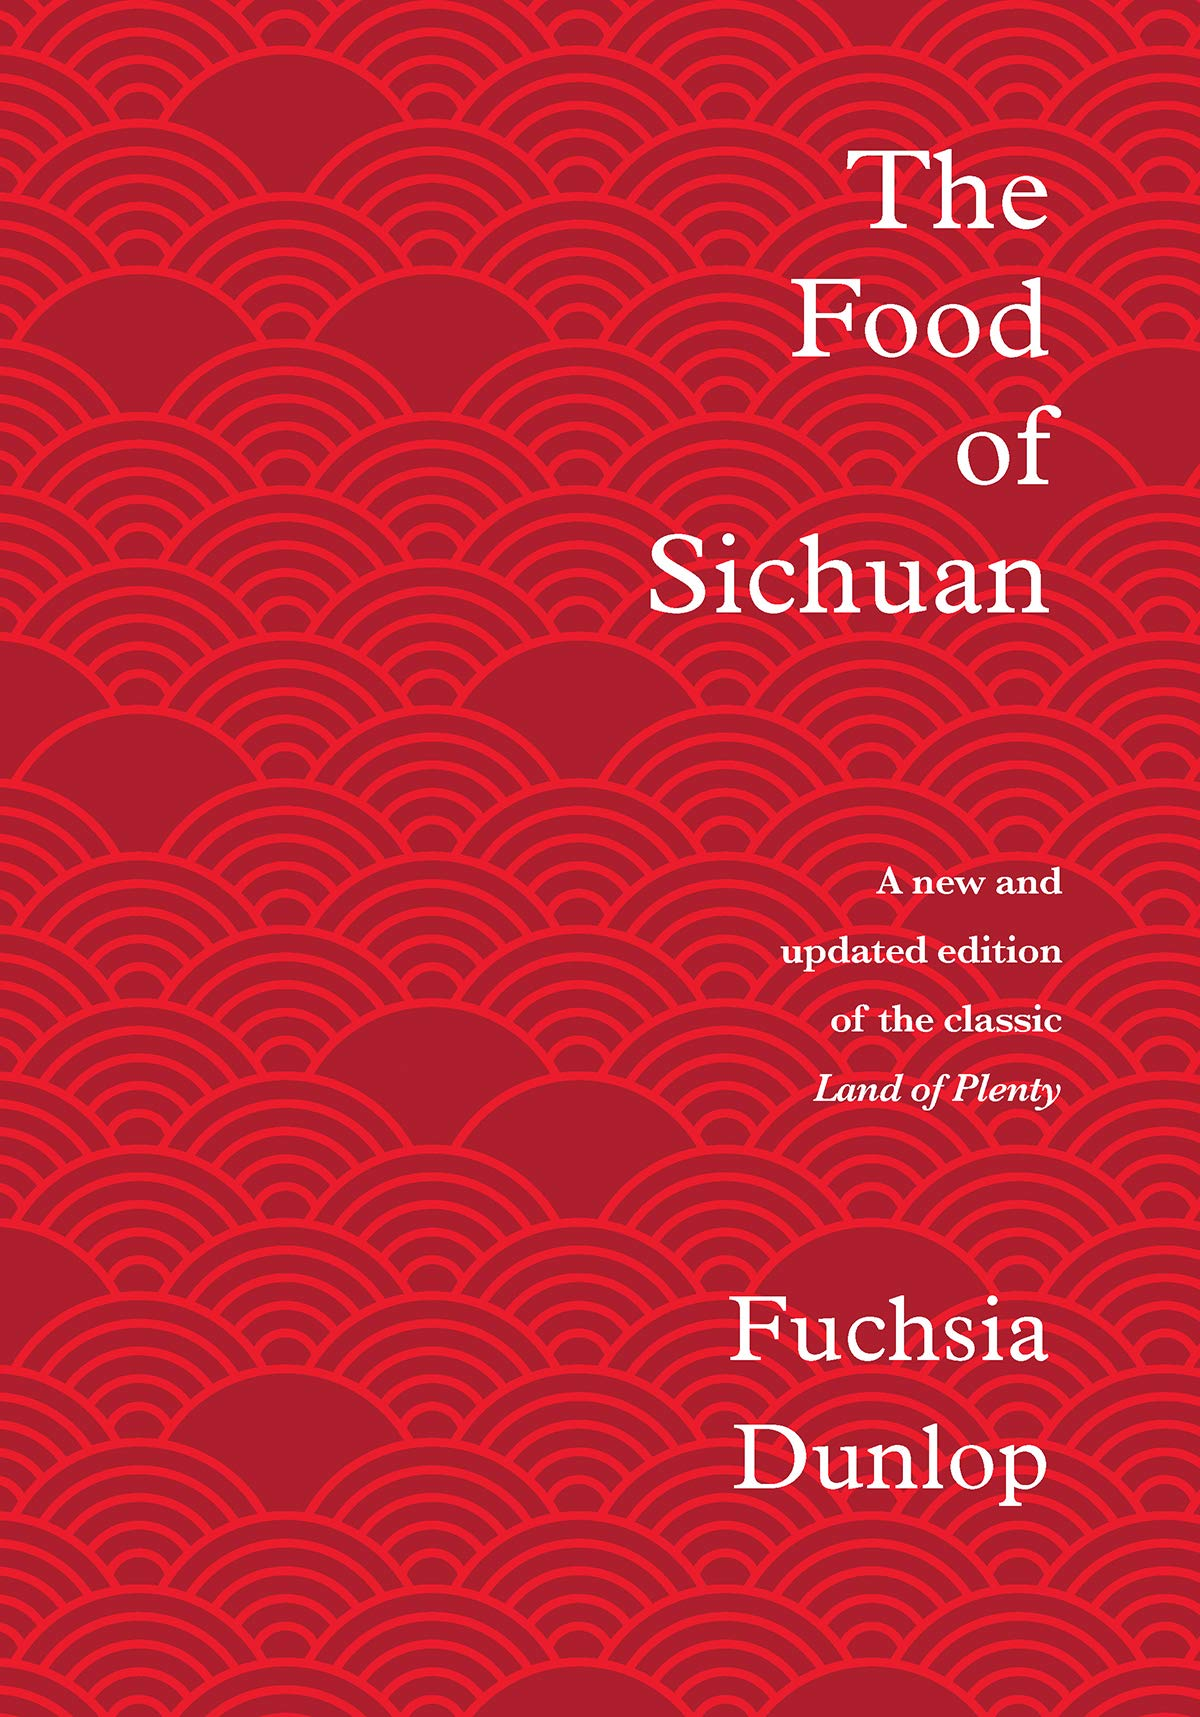 The Food of Sichan by Fuchsia Dunlop